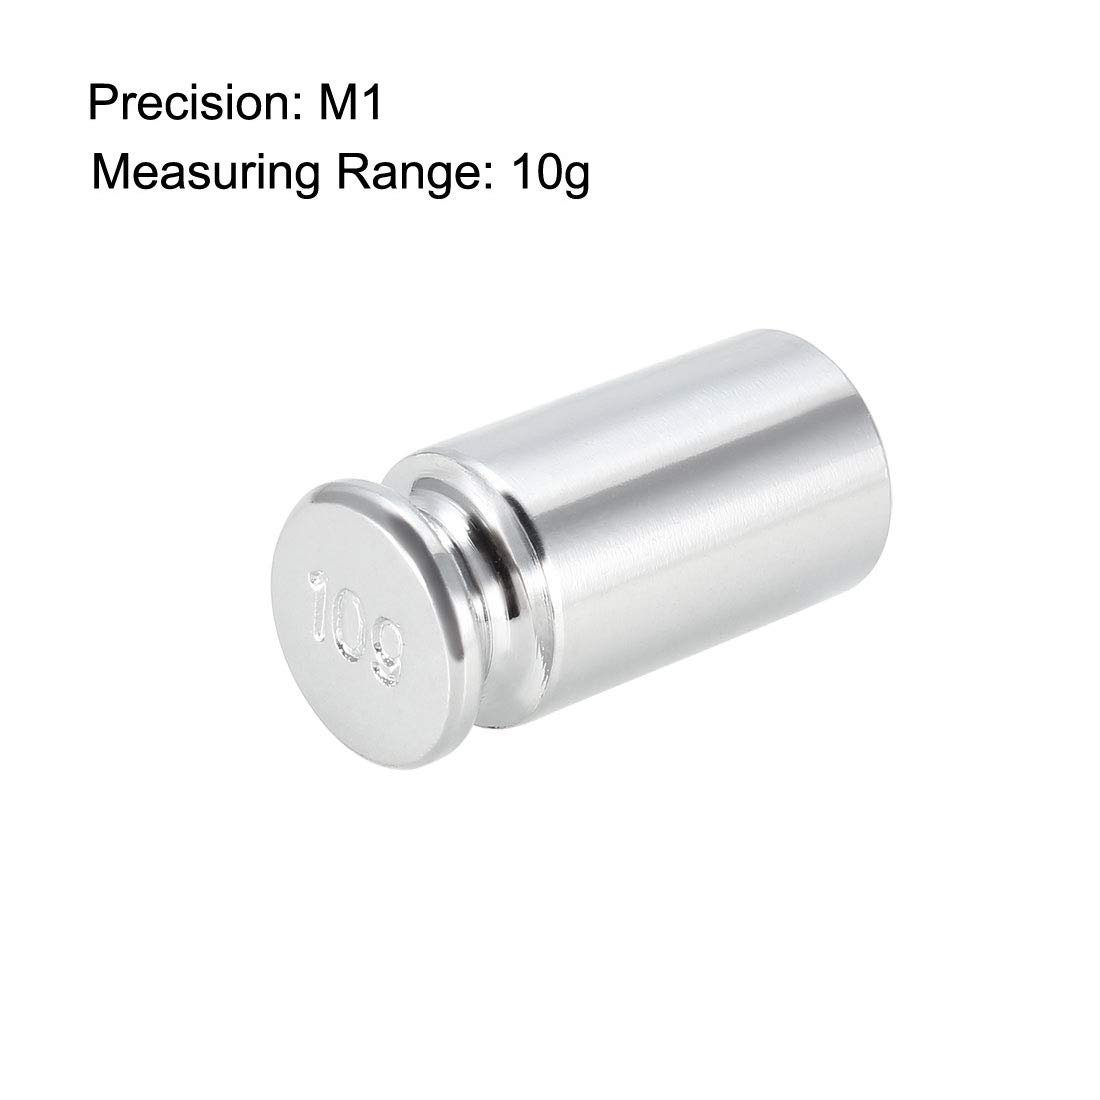 sourcing map Calibration Weight 10g M1 Precision Chrome Plated Steel for Digital Balance Scales